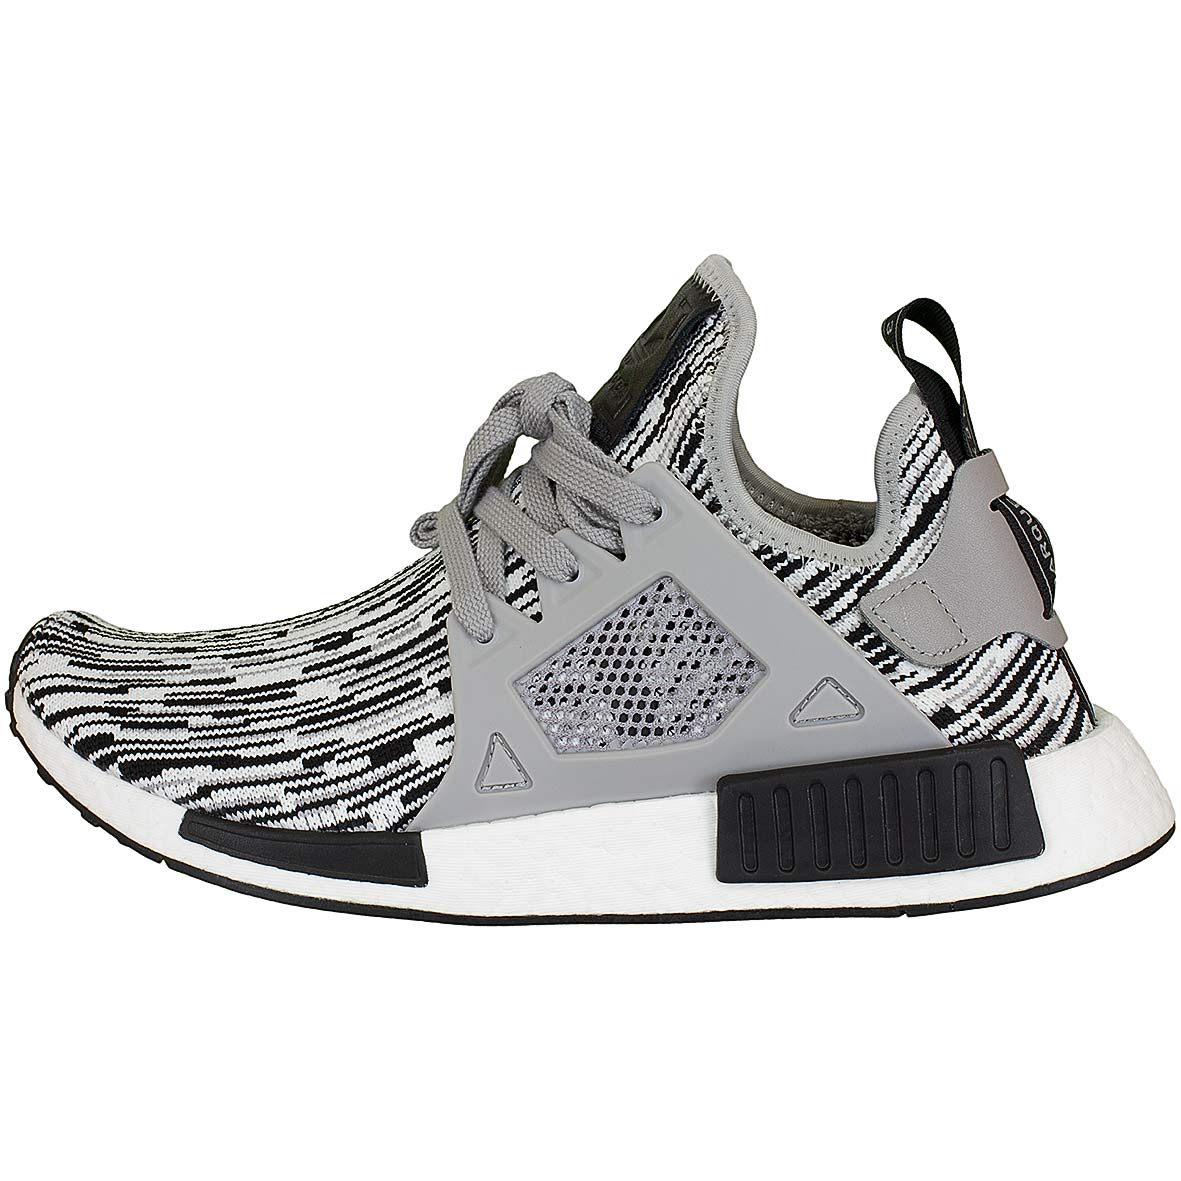 adidas originals sneaker nmd xr1 primeknit schwarz grau. Black Bedroom Furniture Sets. Home Design Ideas